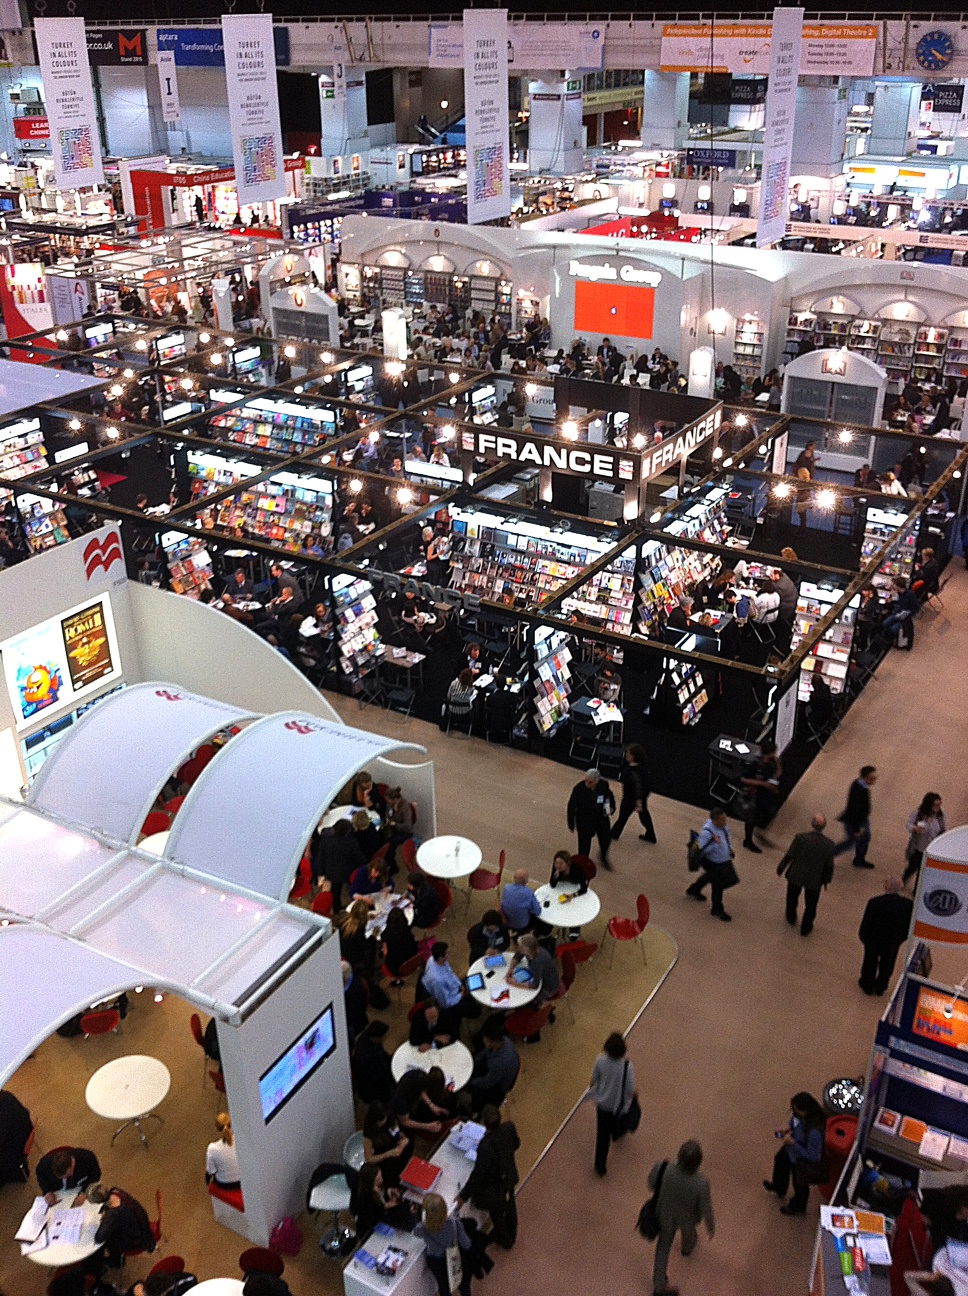 London Book Fair - ground floor - Pan Macmillan stand bottom left